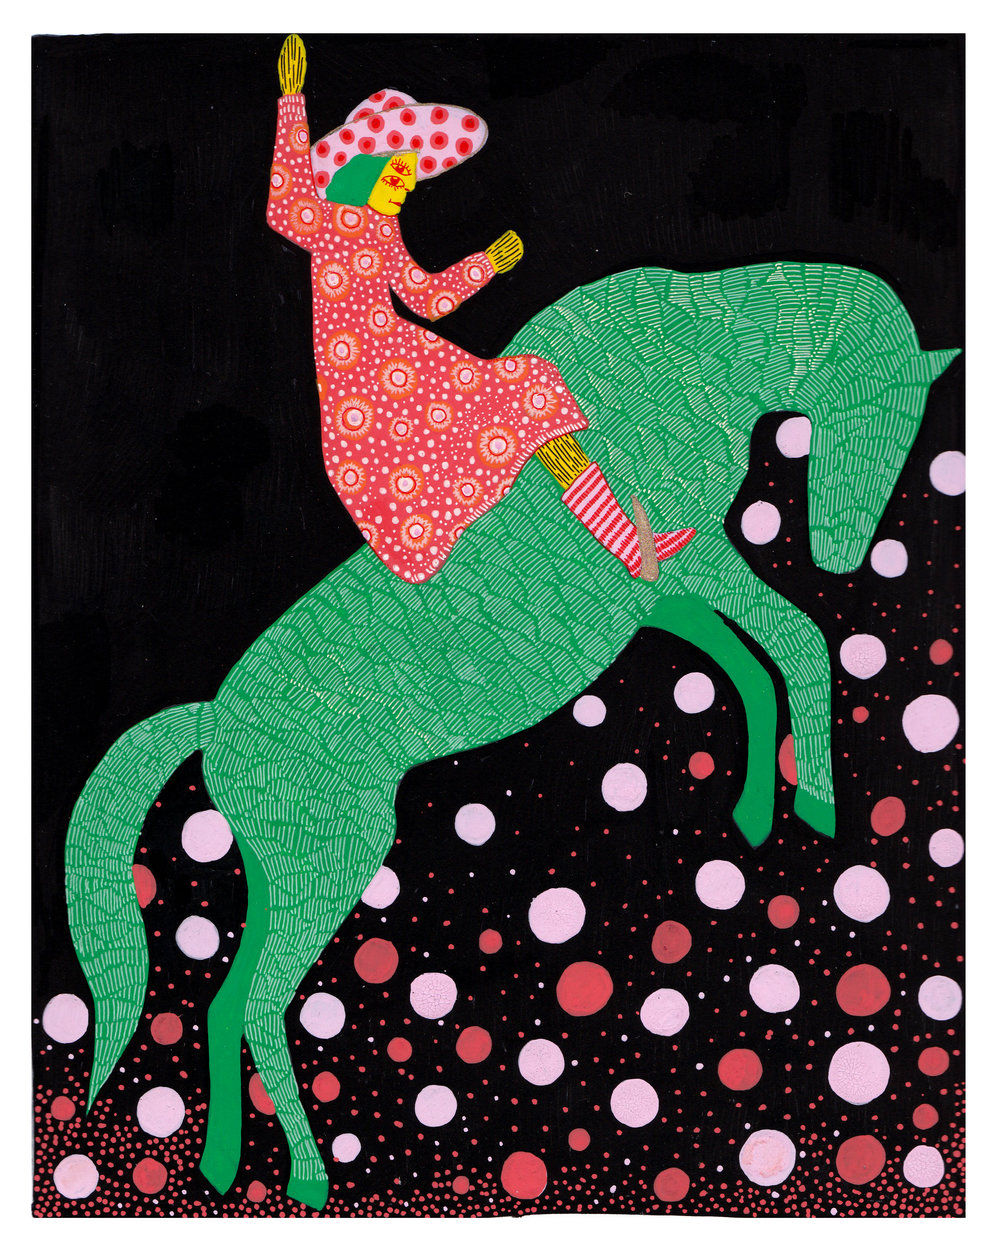 Kami Baergen  • Seattle, WA  @kbaergen   I grew up watching a lot of westerns and most of the women depicted were damsels in distress, or cute housewives, so I've become interested in finding the independent women of the west. This piece is inspired by Dorothy Morrell, a championship rodeo rider.